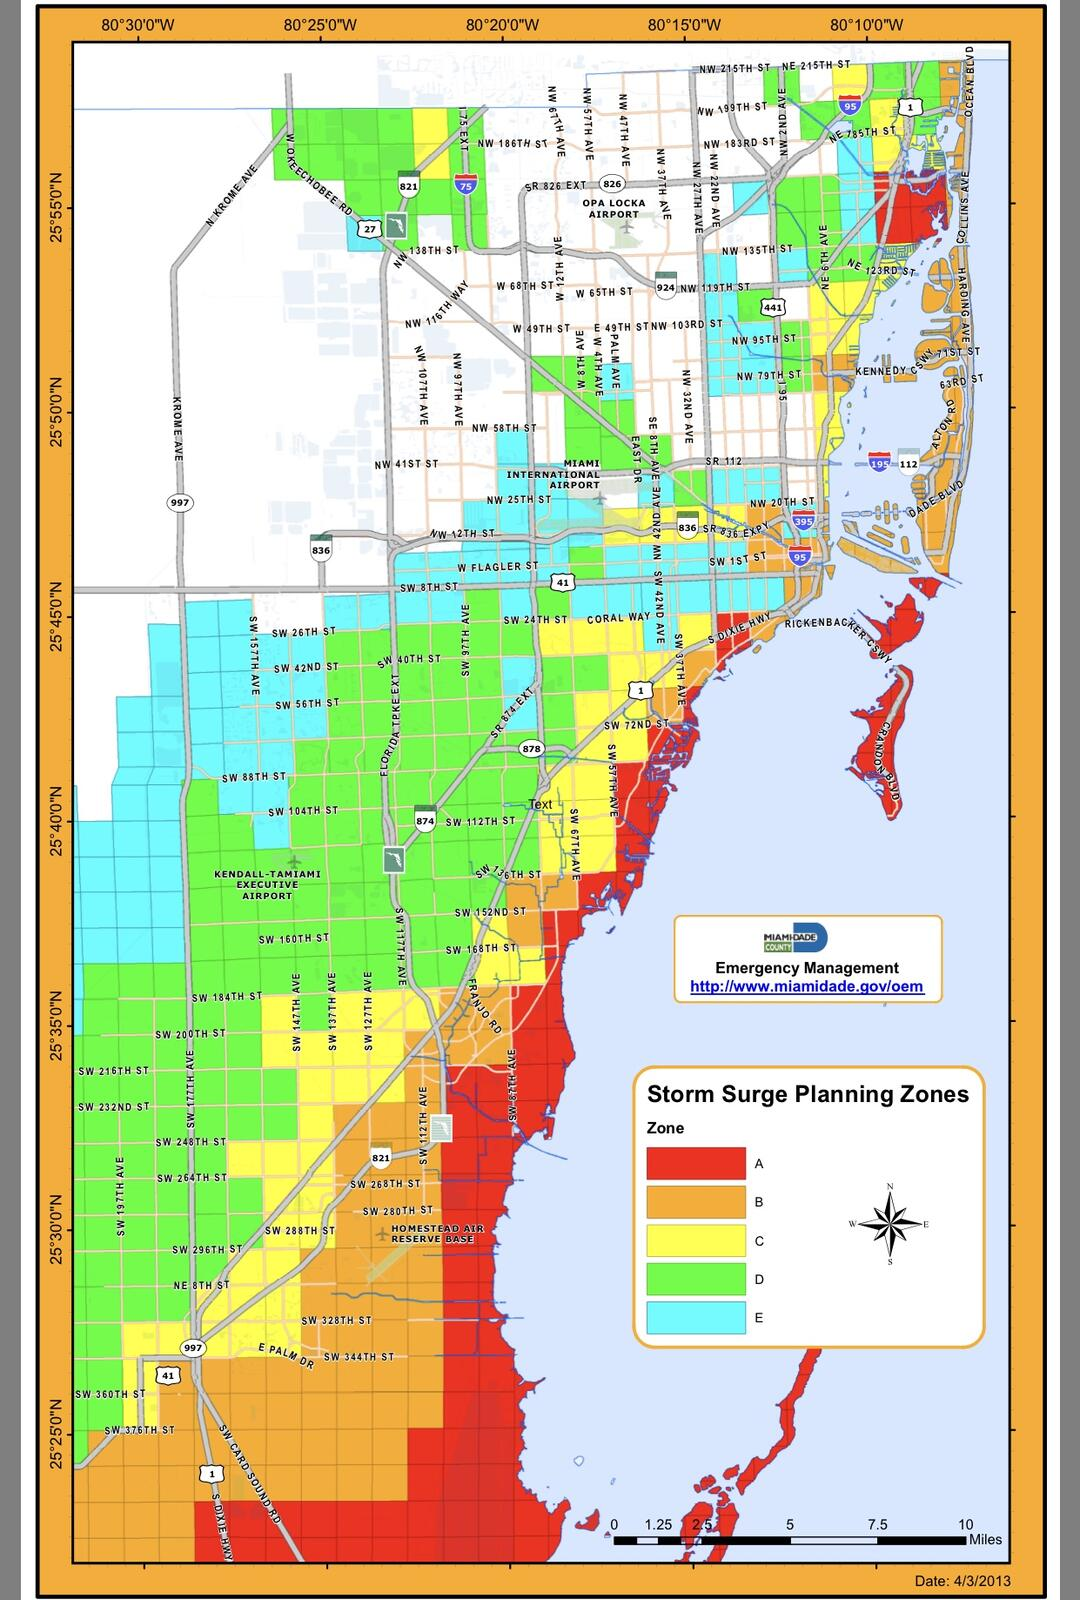 for planning purposes: hurricane evacuation zones and